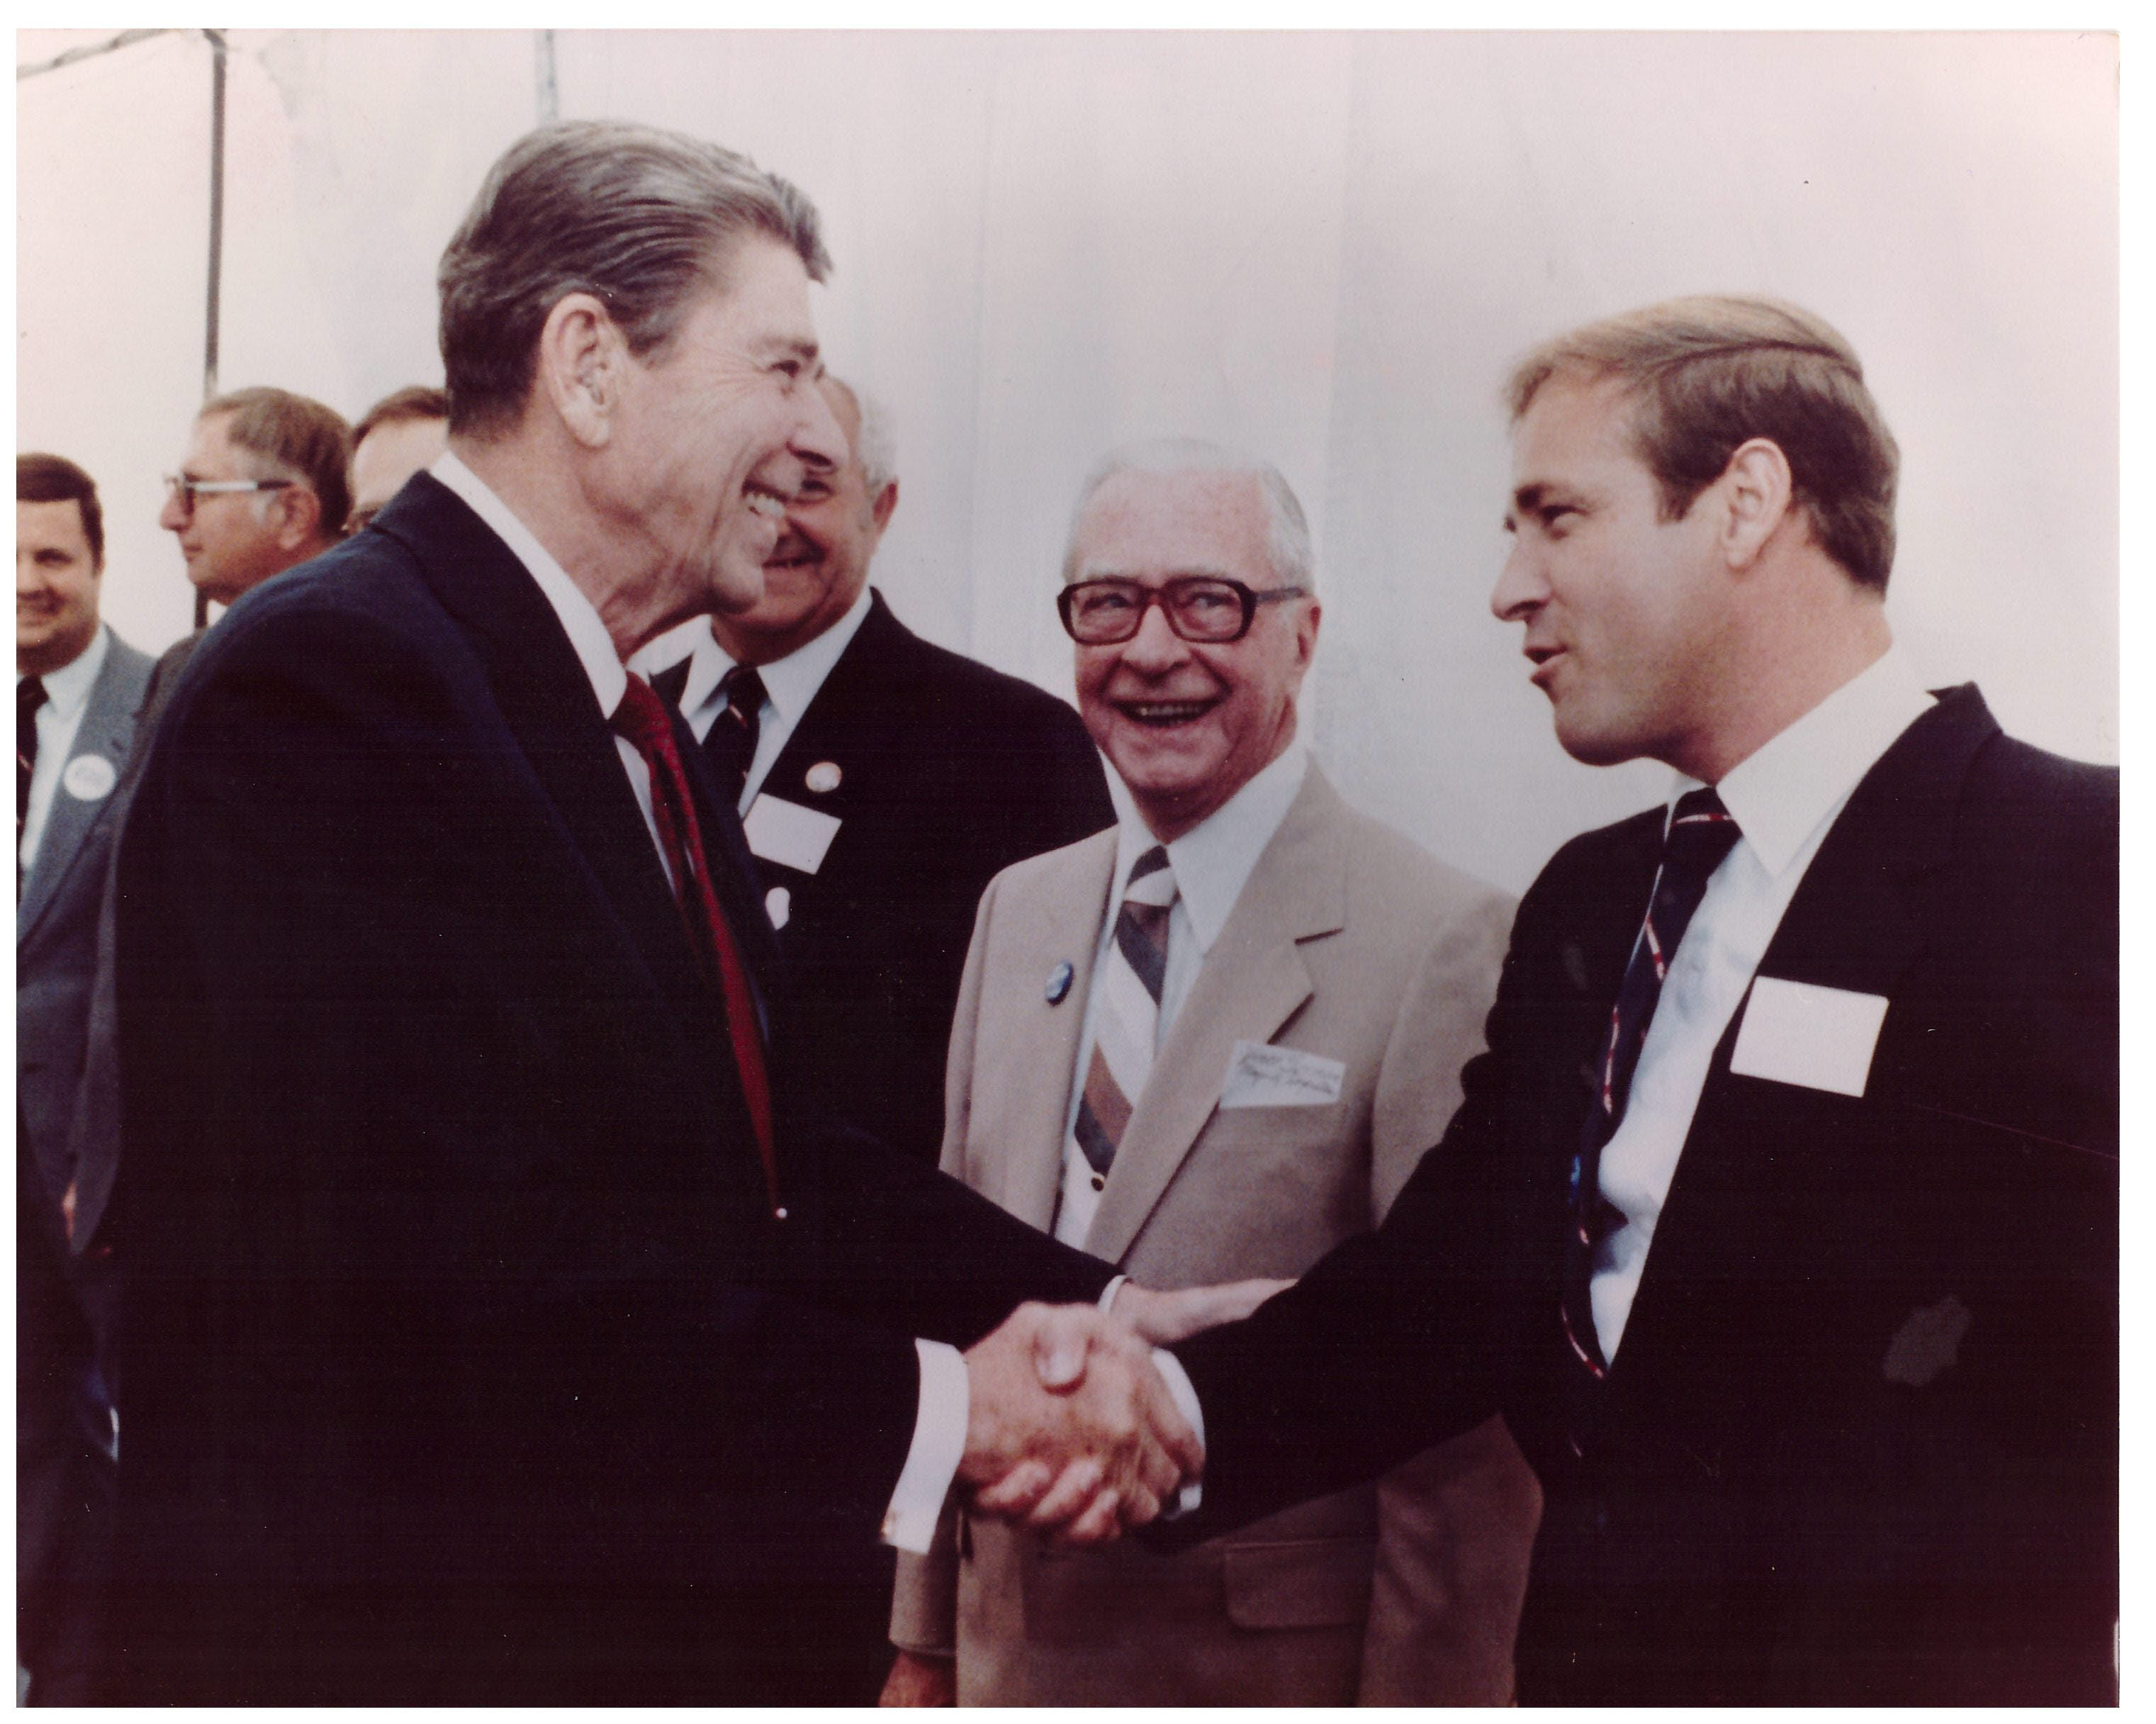 President Ronald Reagan and David Christian